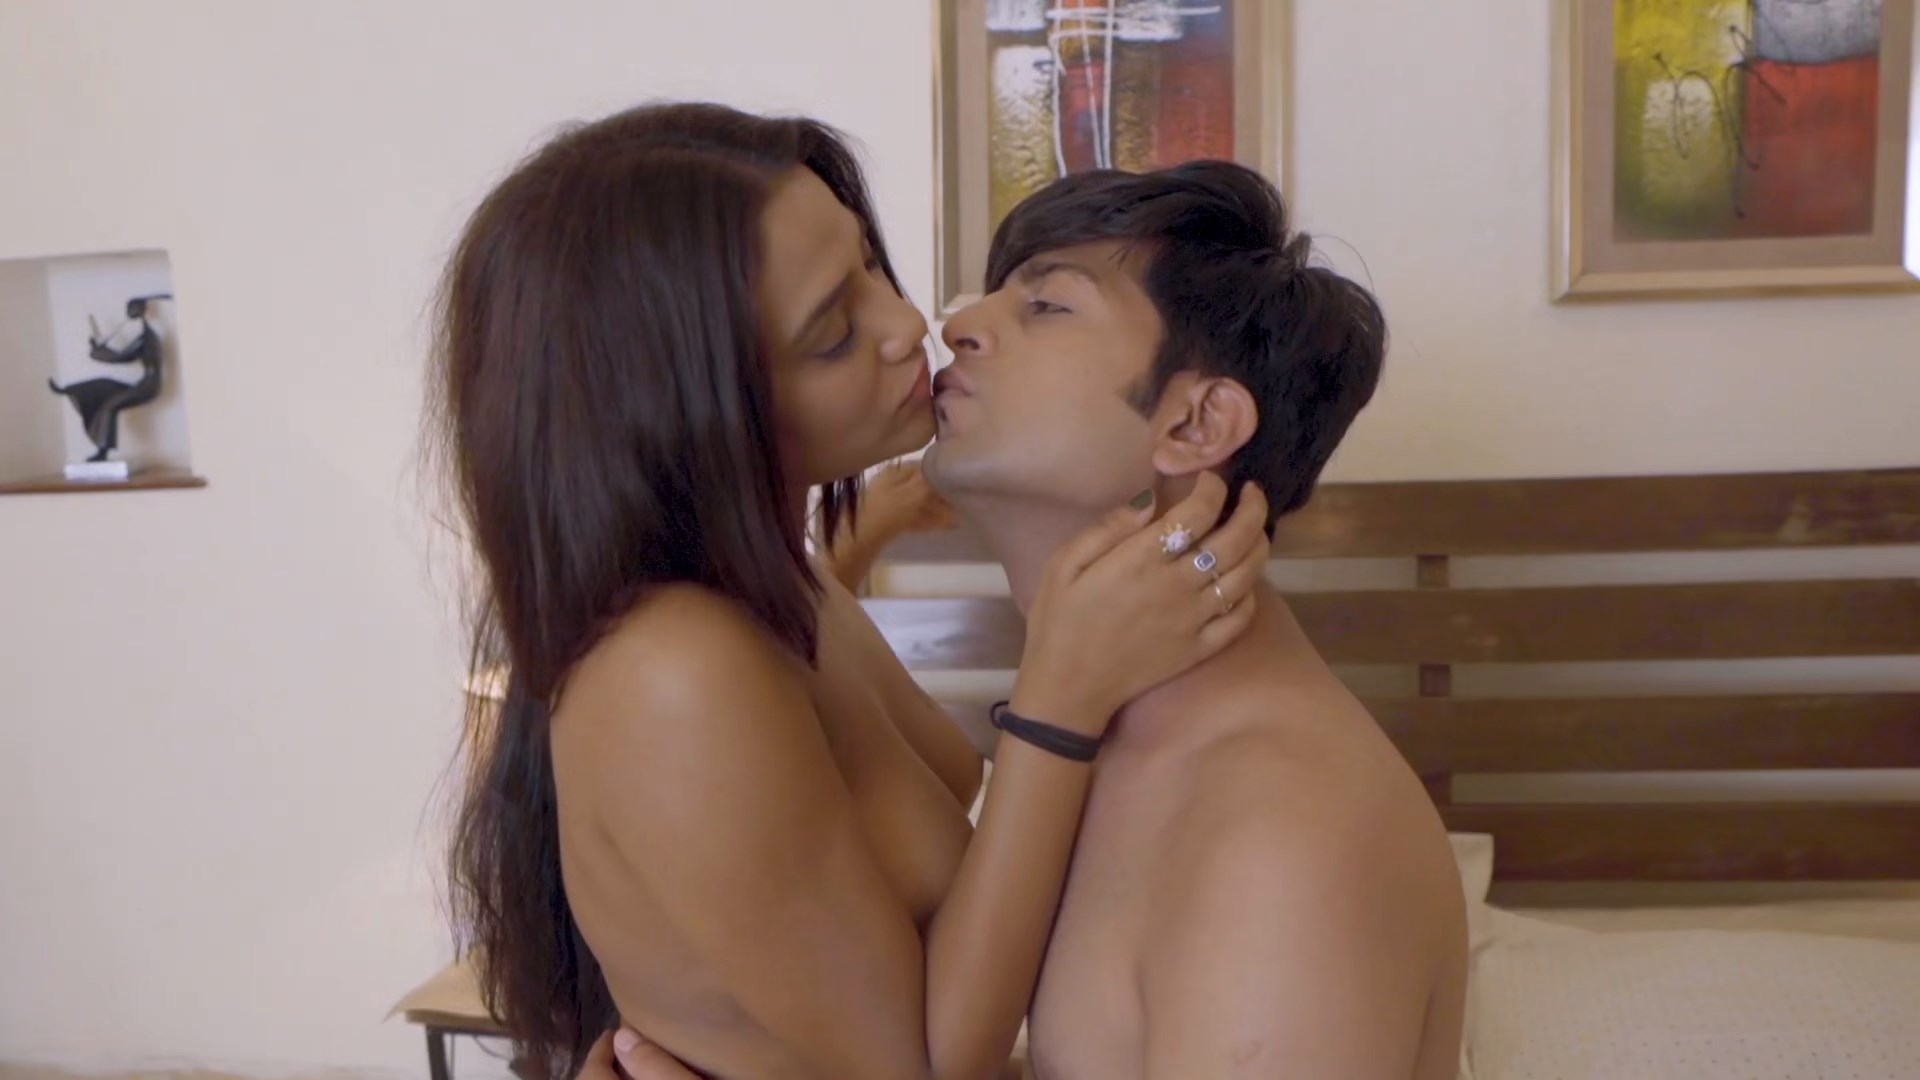 FFSTHT 11 - 18+Faasla (2020) HotShots Originals Hindi Short Film 720p HDRip 160MB x264 AAC